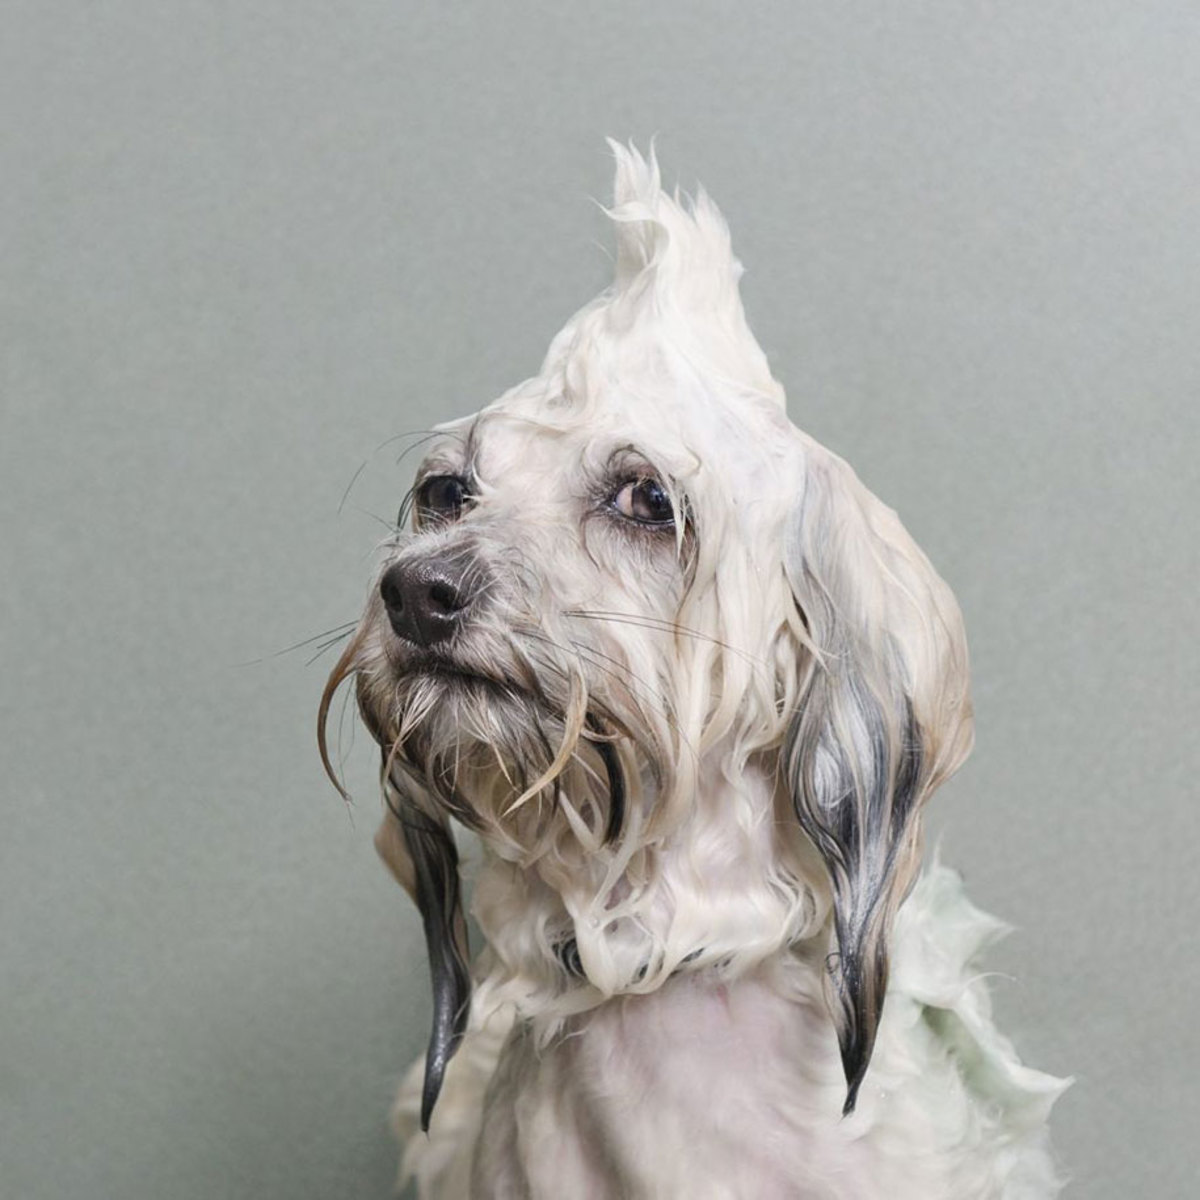 wet-dogs-striking-paws-8